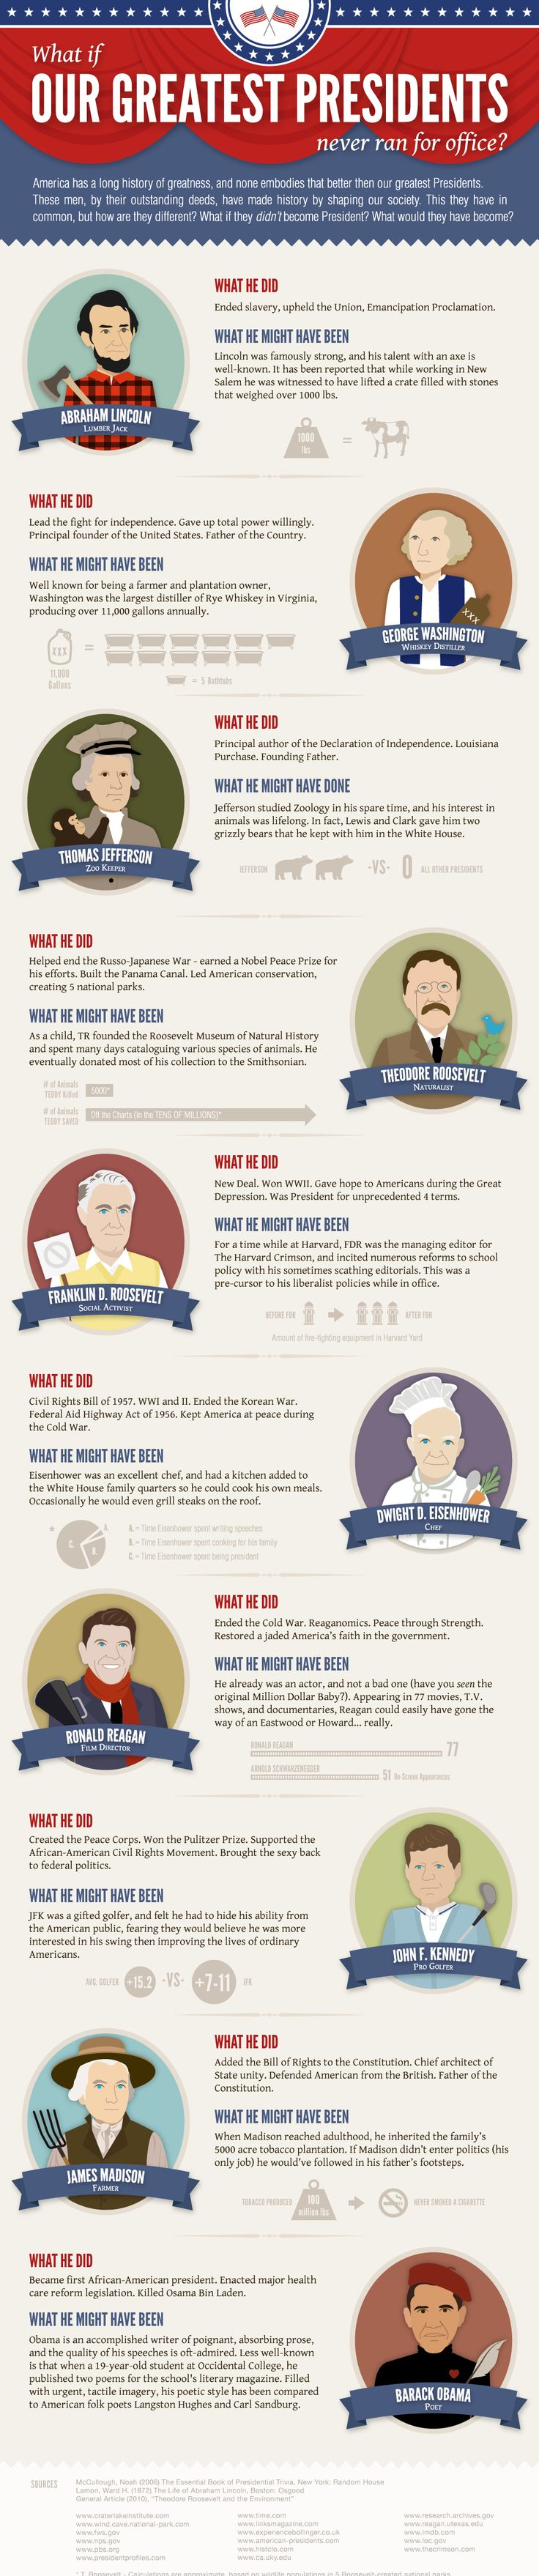 What if our greatest Presidents never ran for office? Alternative career paths via @Jenna Petersen